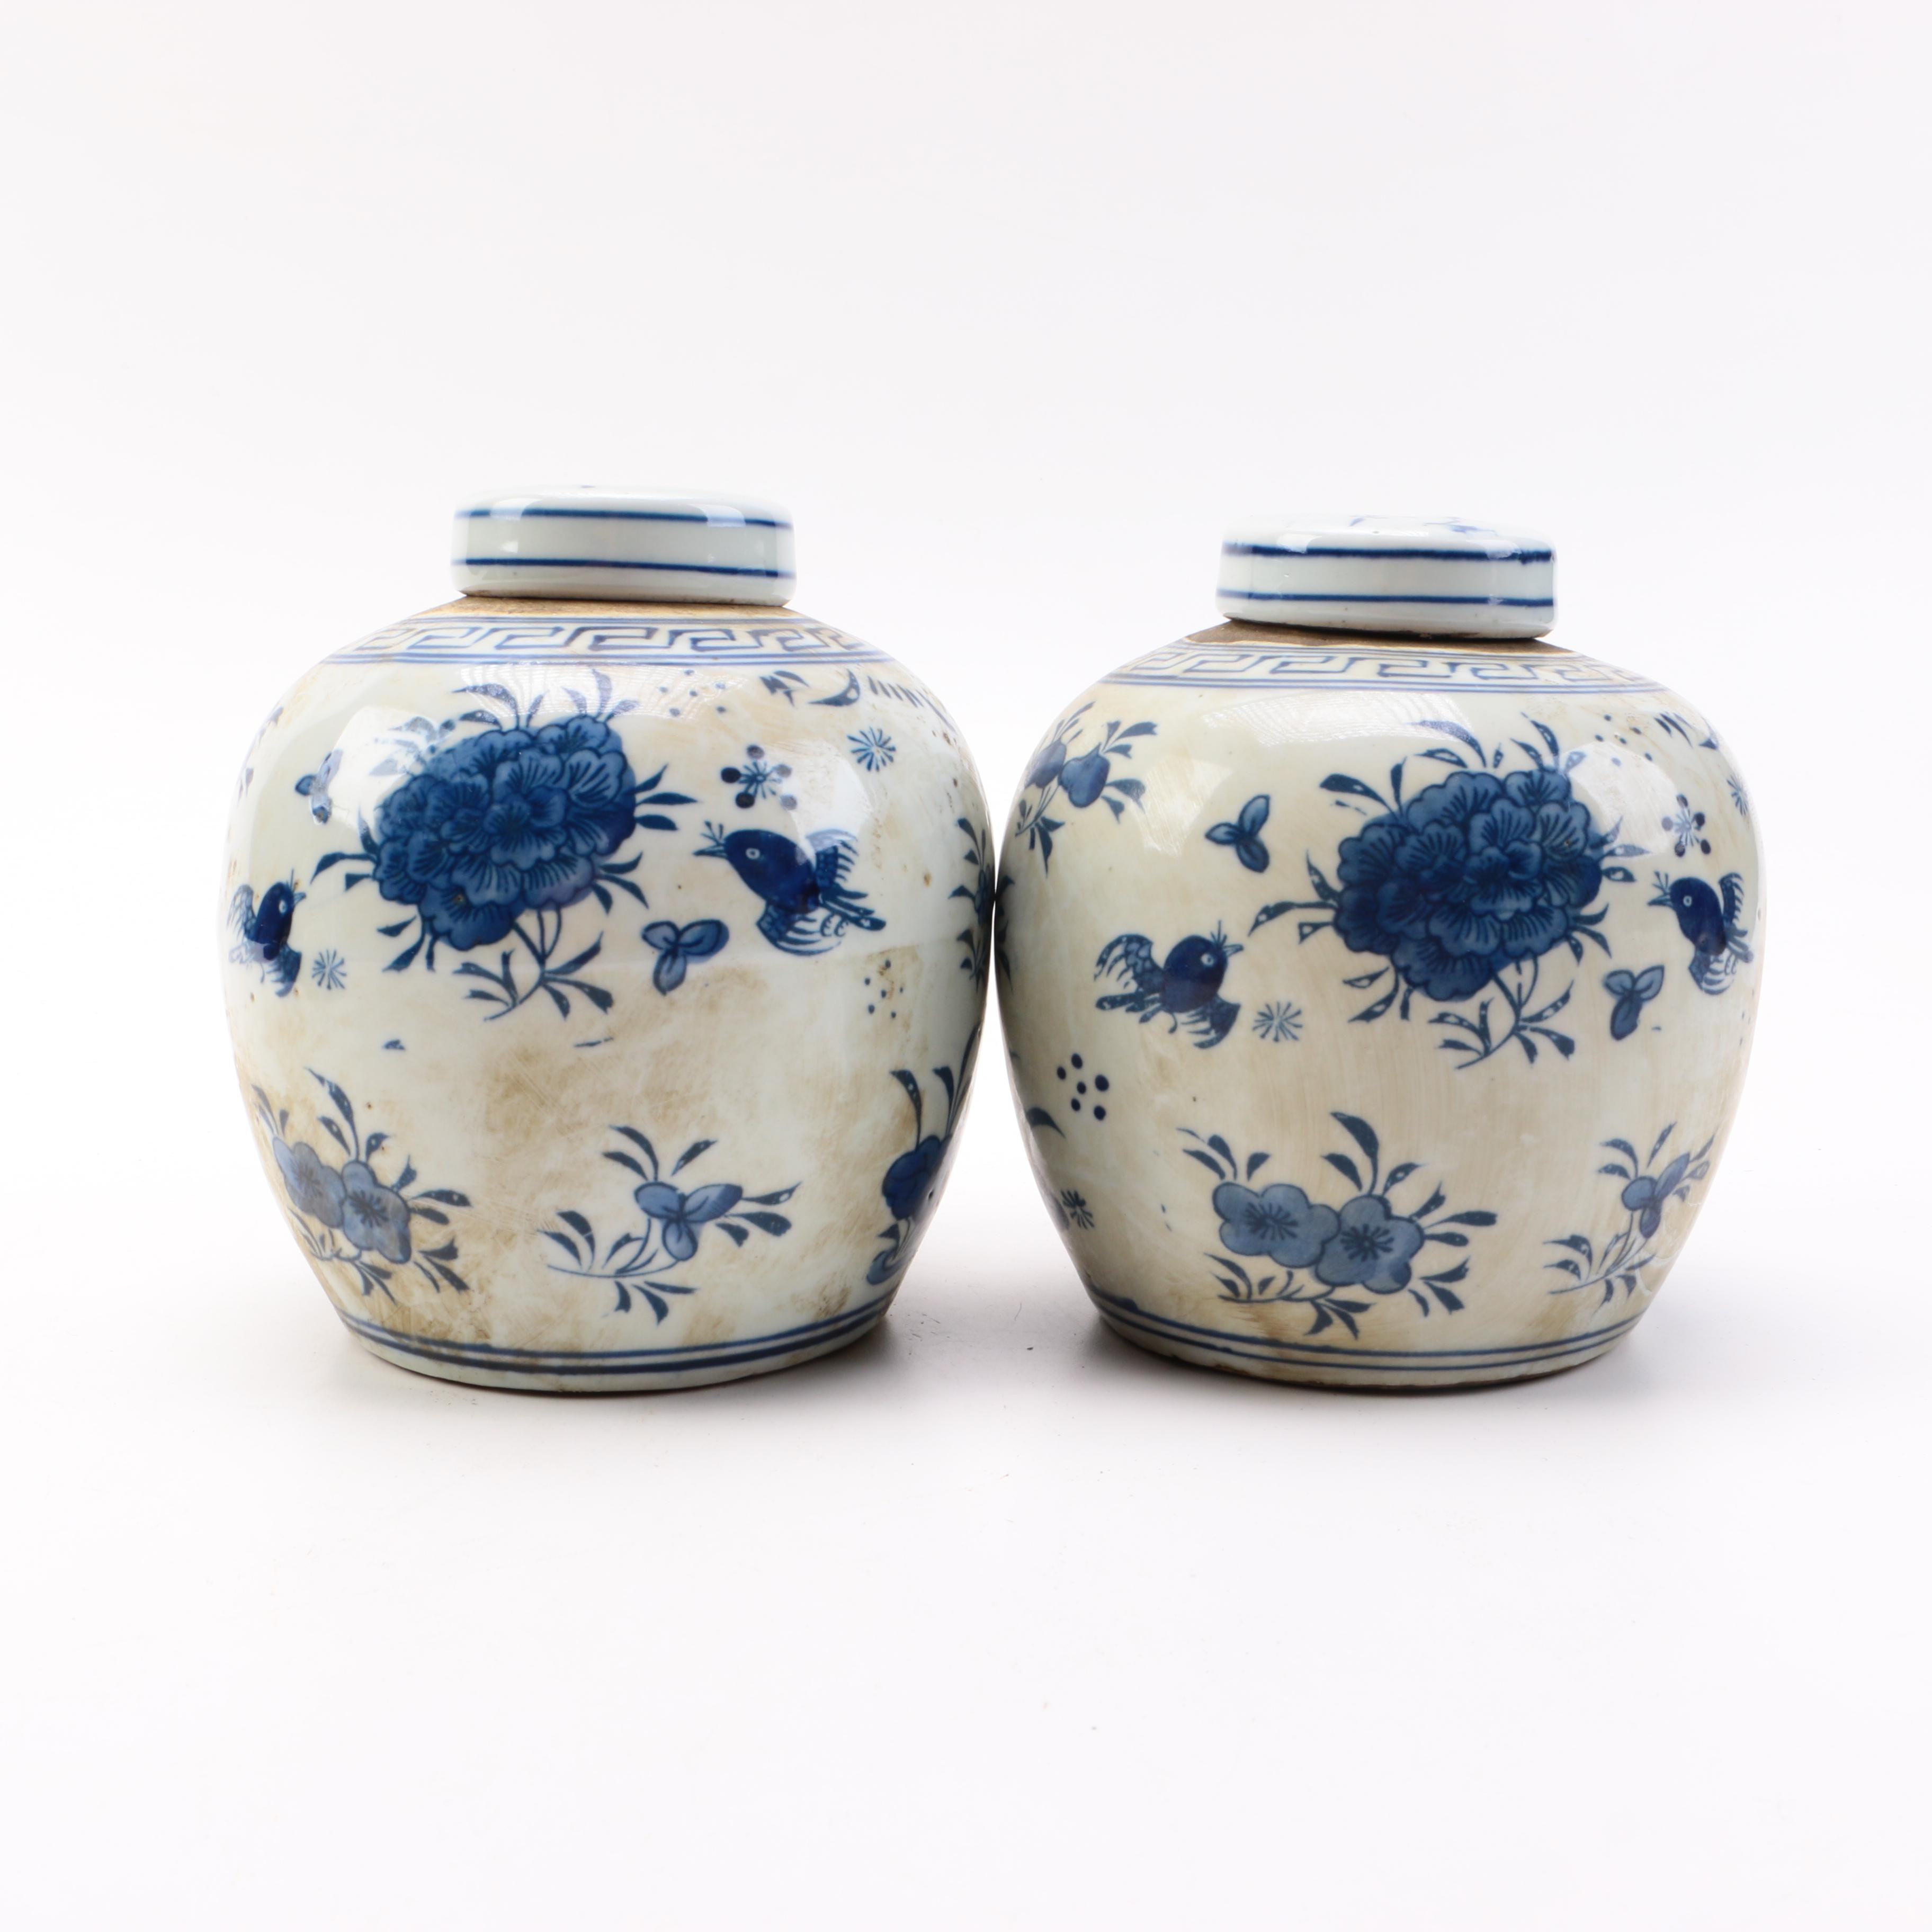 Pair of Blue and White Ceramic Floral Ginger Jars